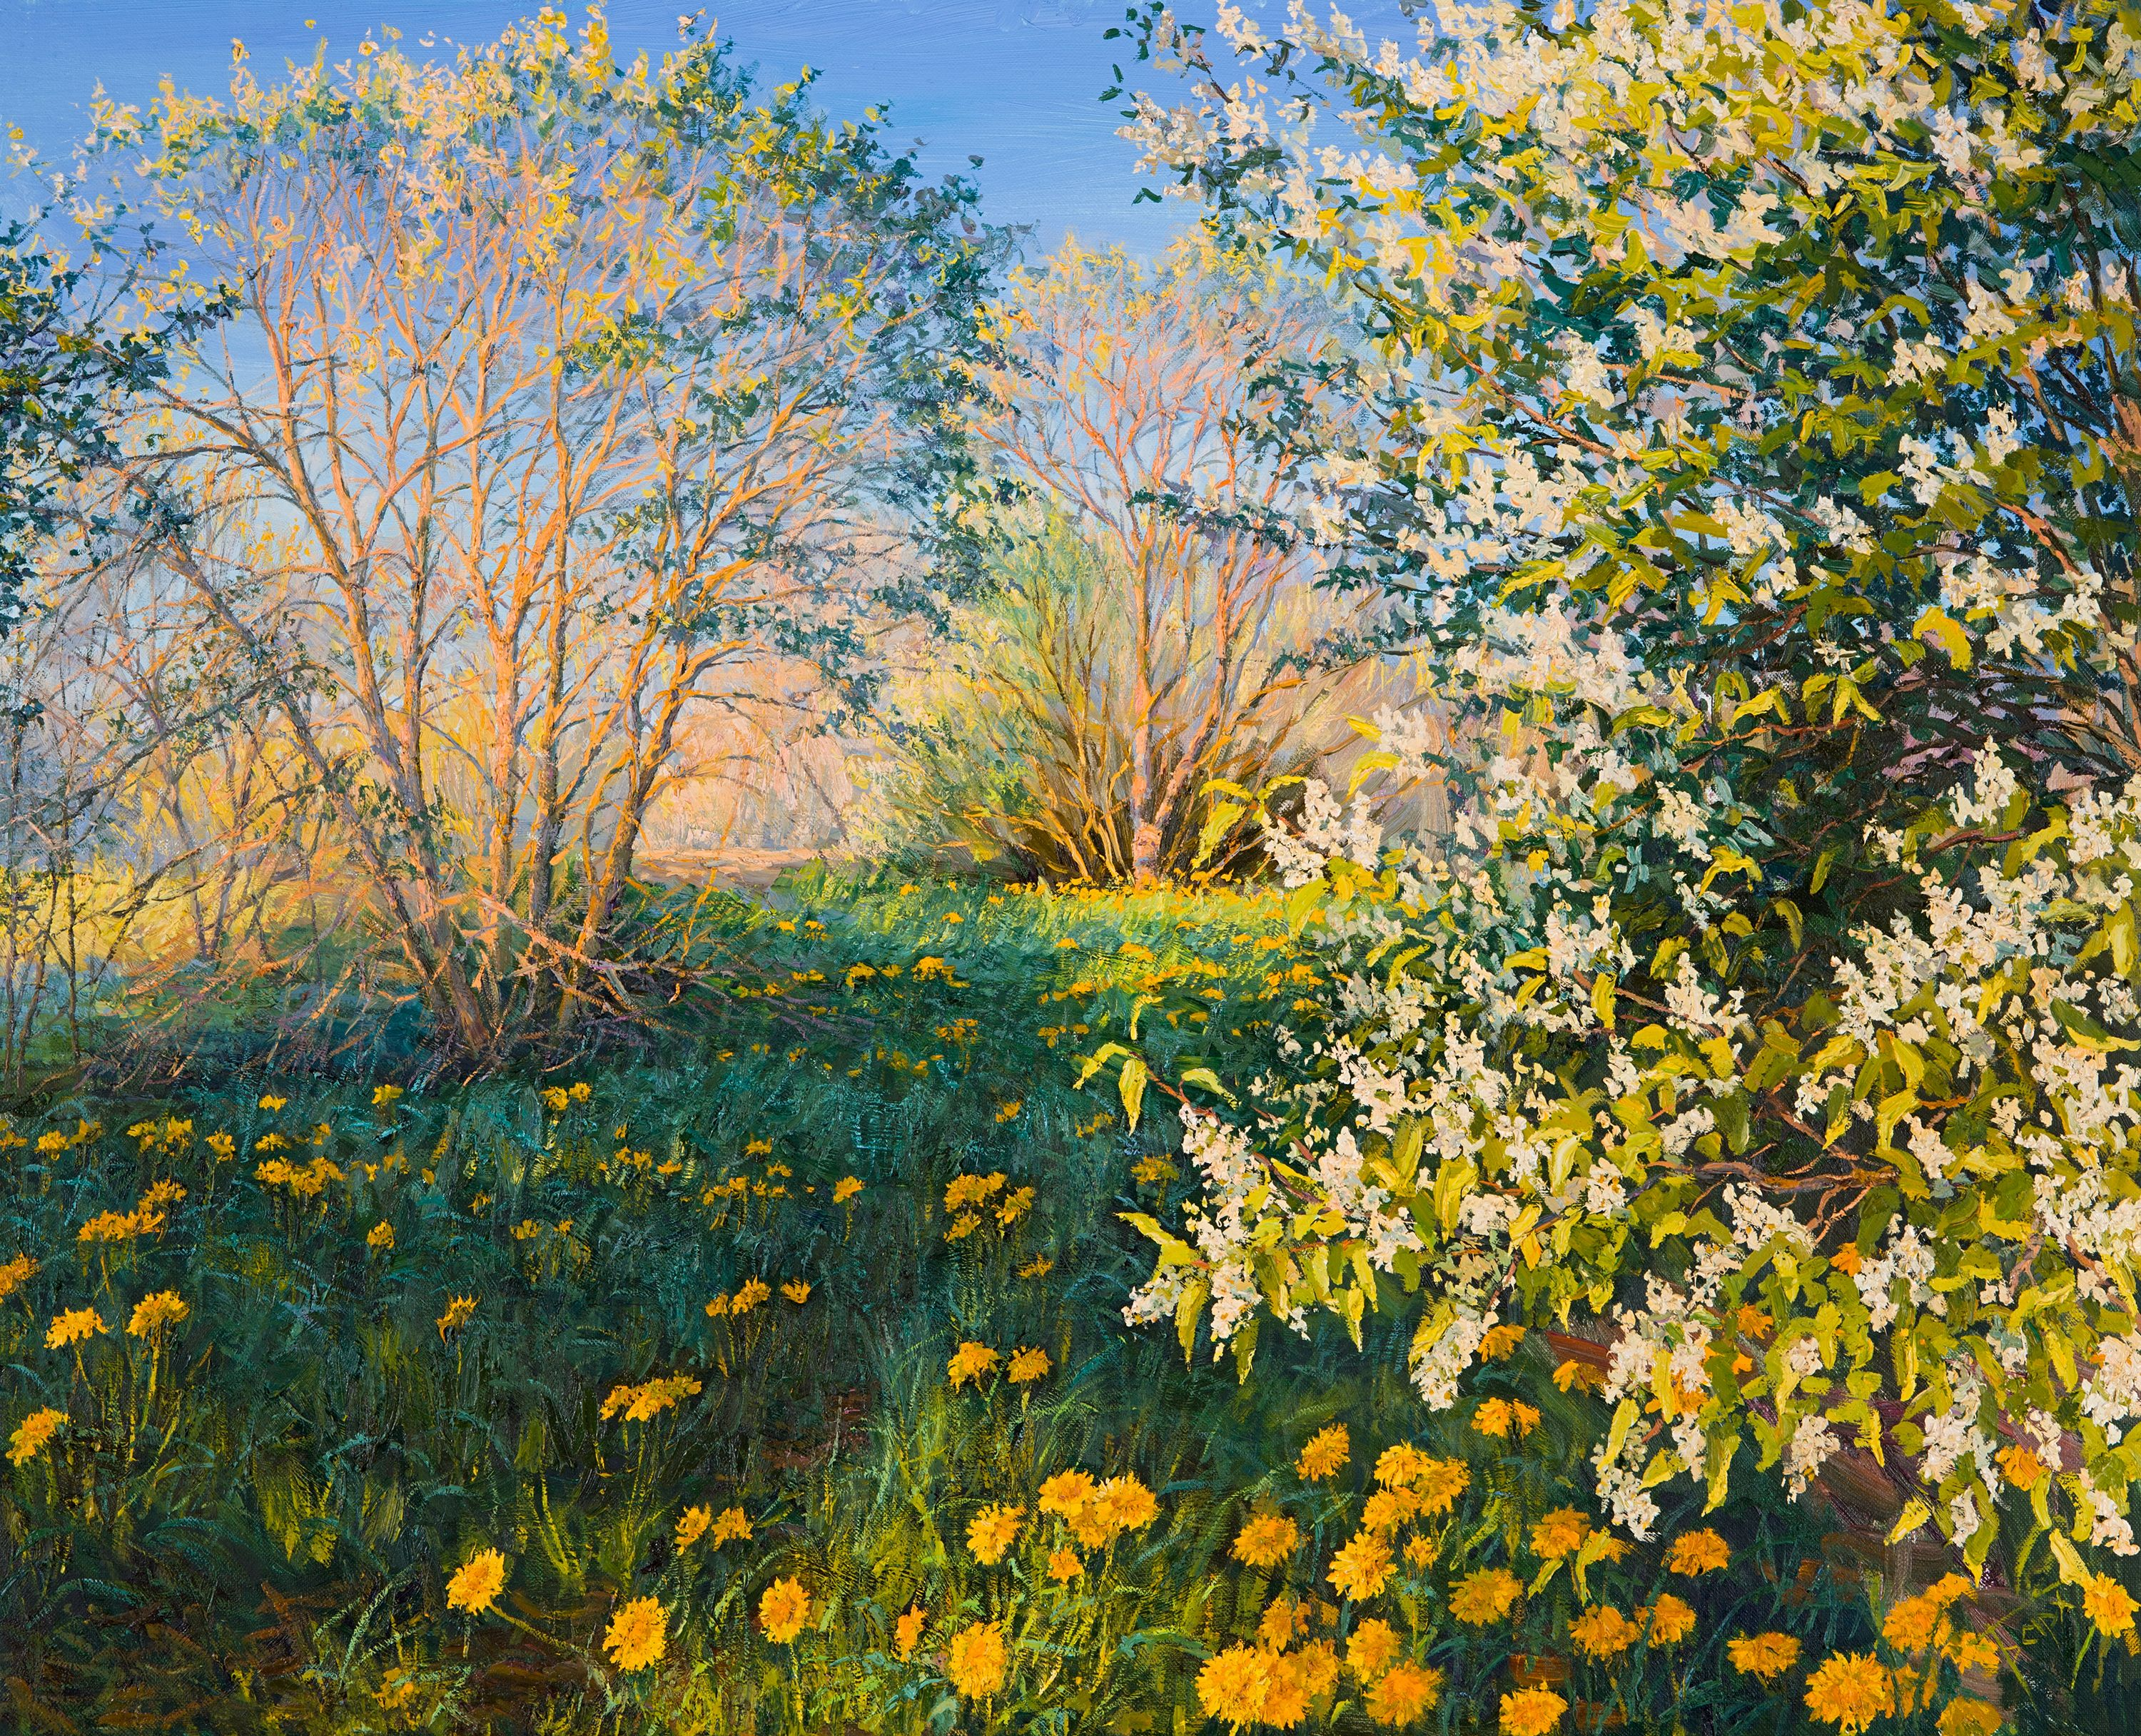 Spring Landscape, Painting, Oil on Canvas